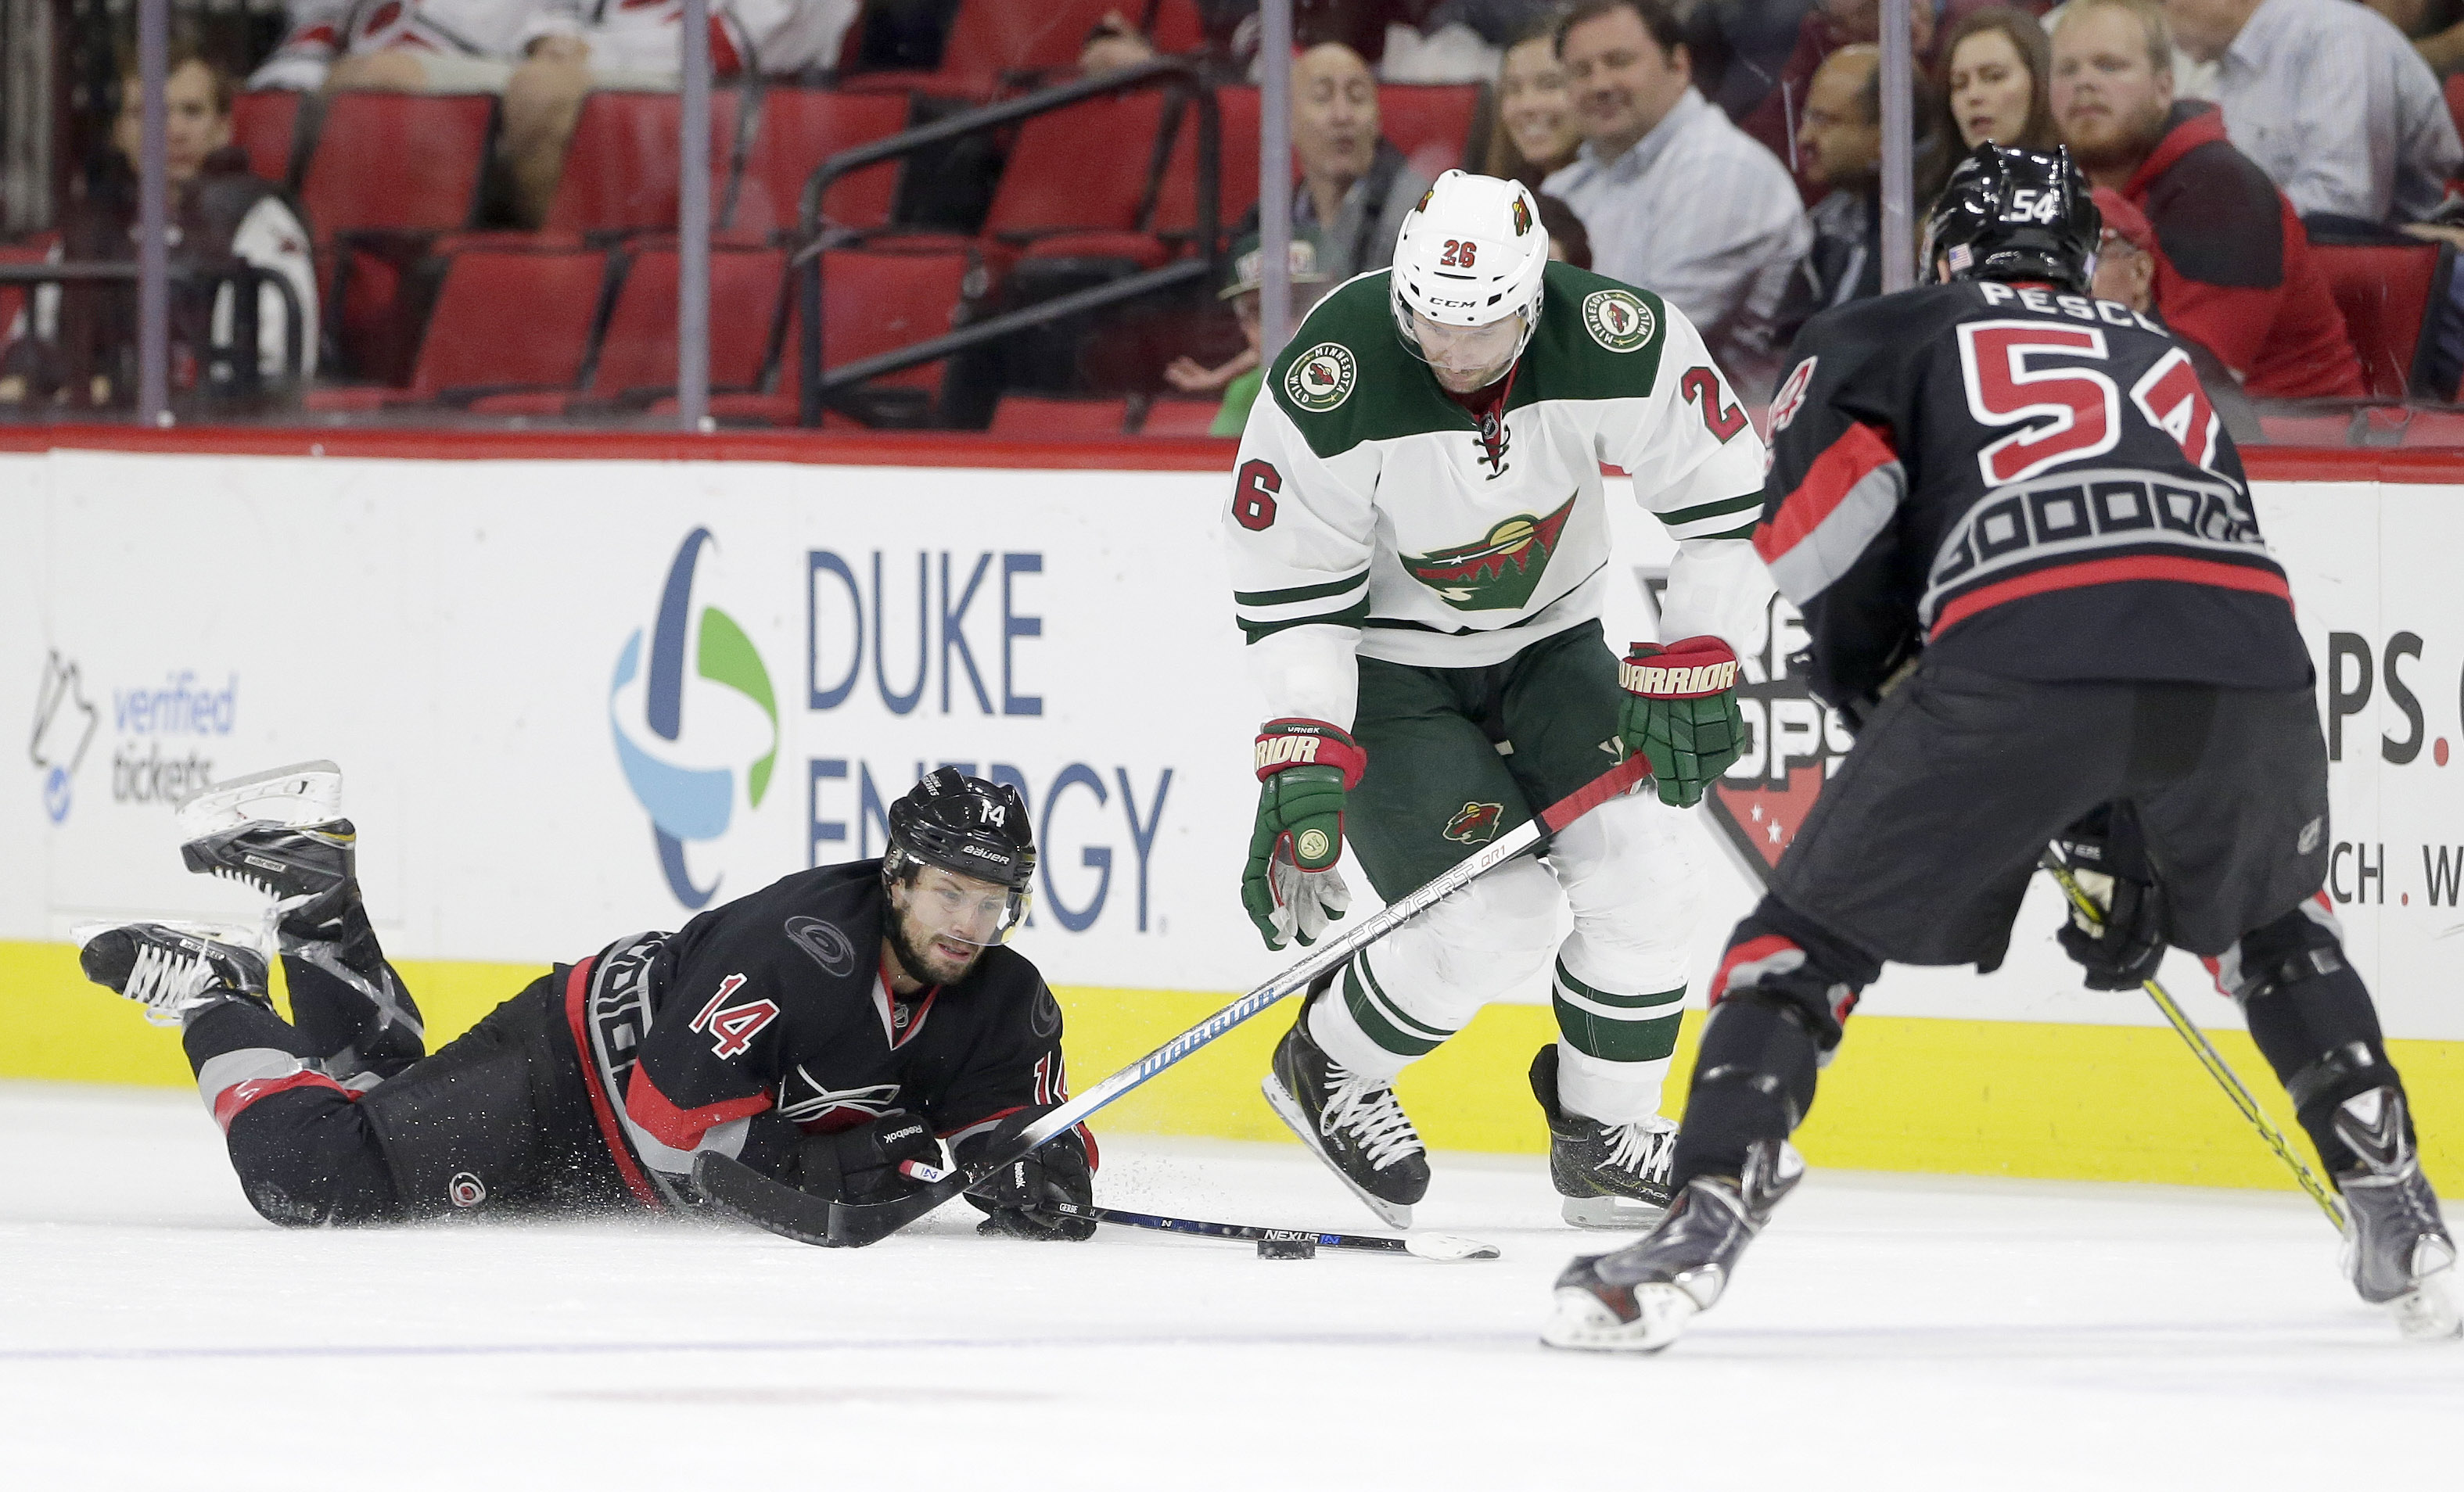 Carolina Hurricanes' Nathan Gerbe (14) and Brett Pesce (54) struggle for possession of the puck with Minnesota Wild's Thomas Vanek (26), of Austria, during the first period of an NHL hockey game in Raleigh, N.C., Thursday, Nov. 12, 2015. (AP Photo/Gerry B